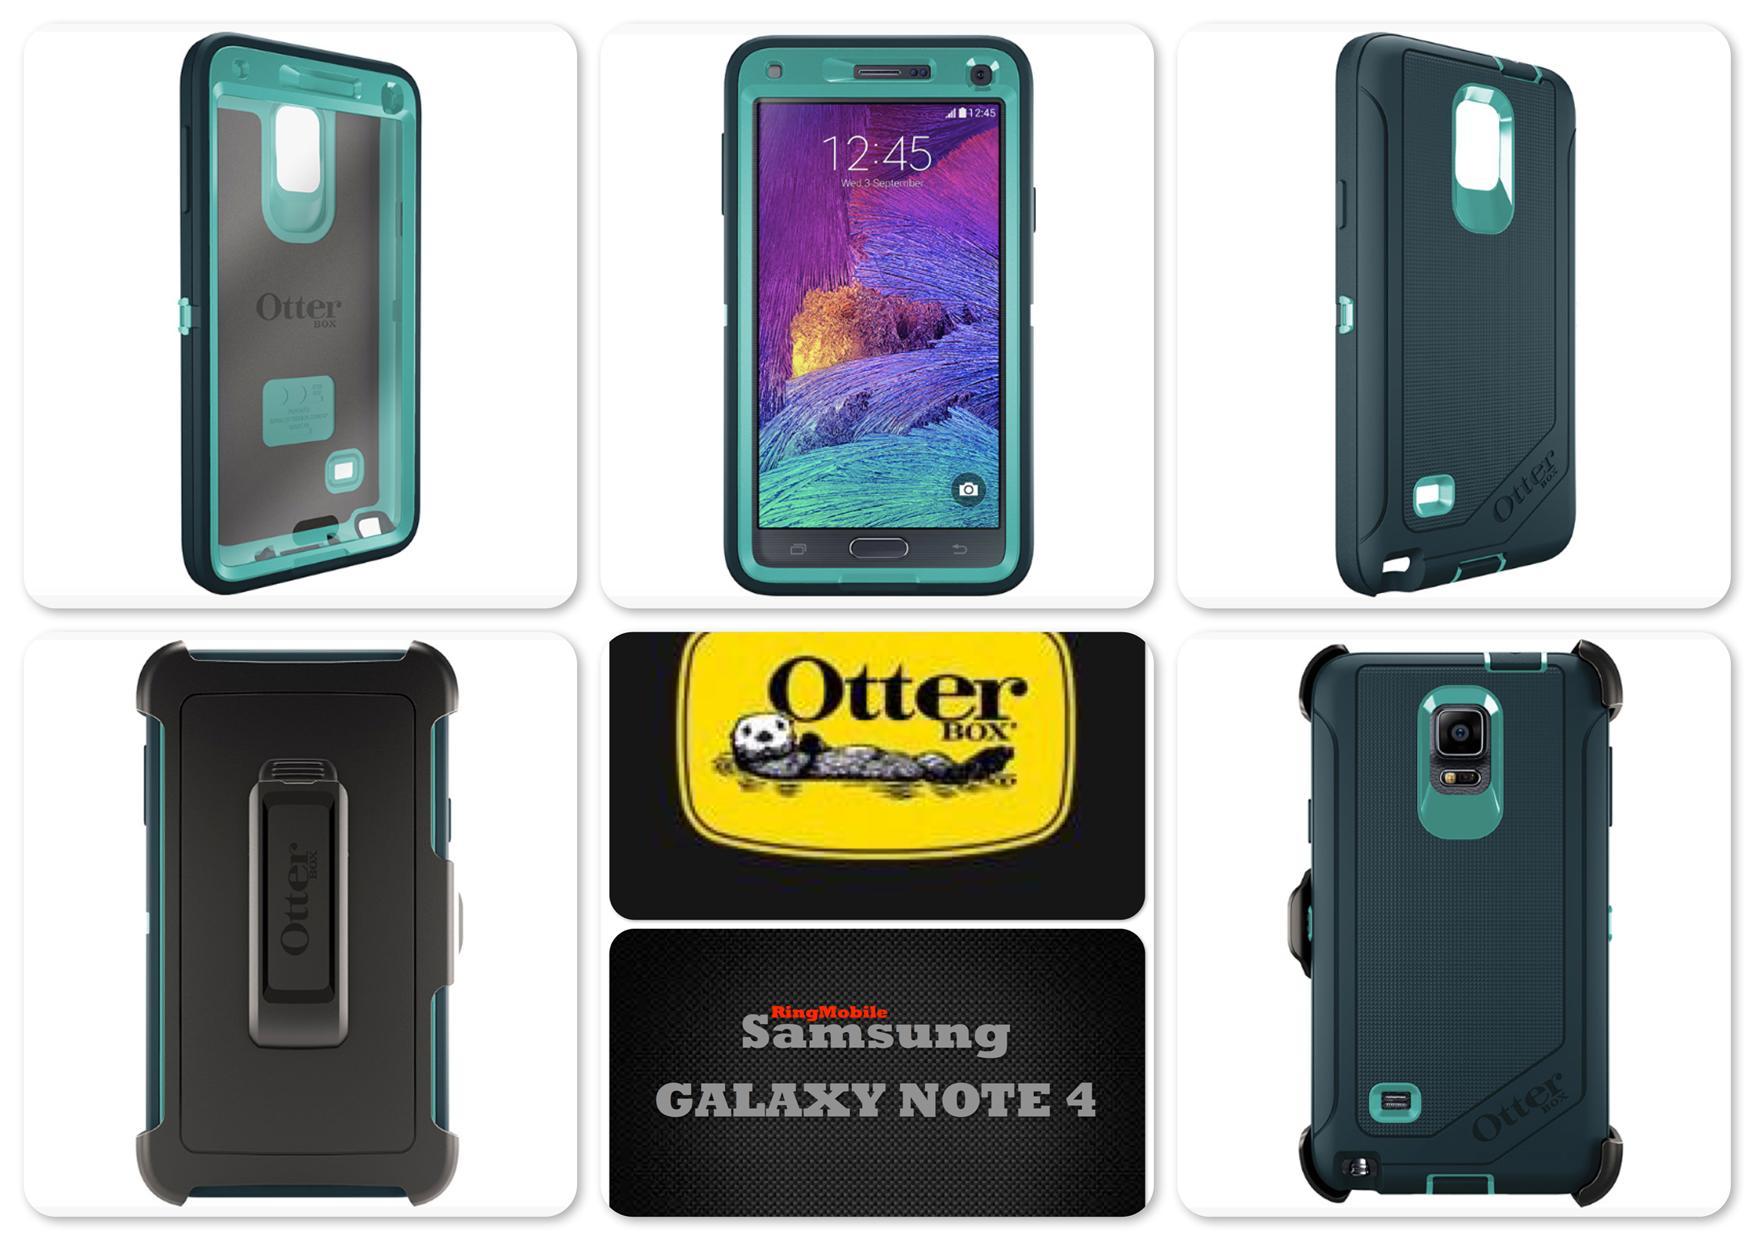 Bdotcom = Samsung Galaxy Note 4 Otterbox Defender Series = OASIS